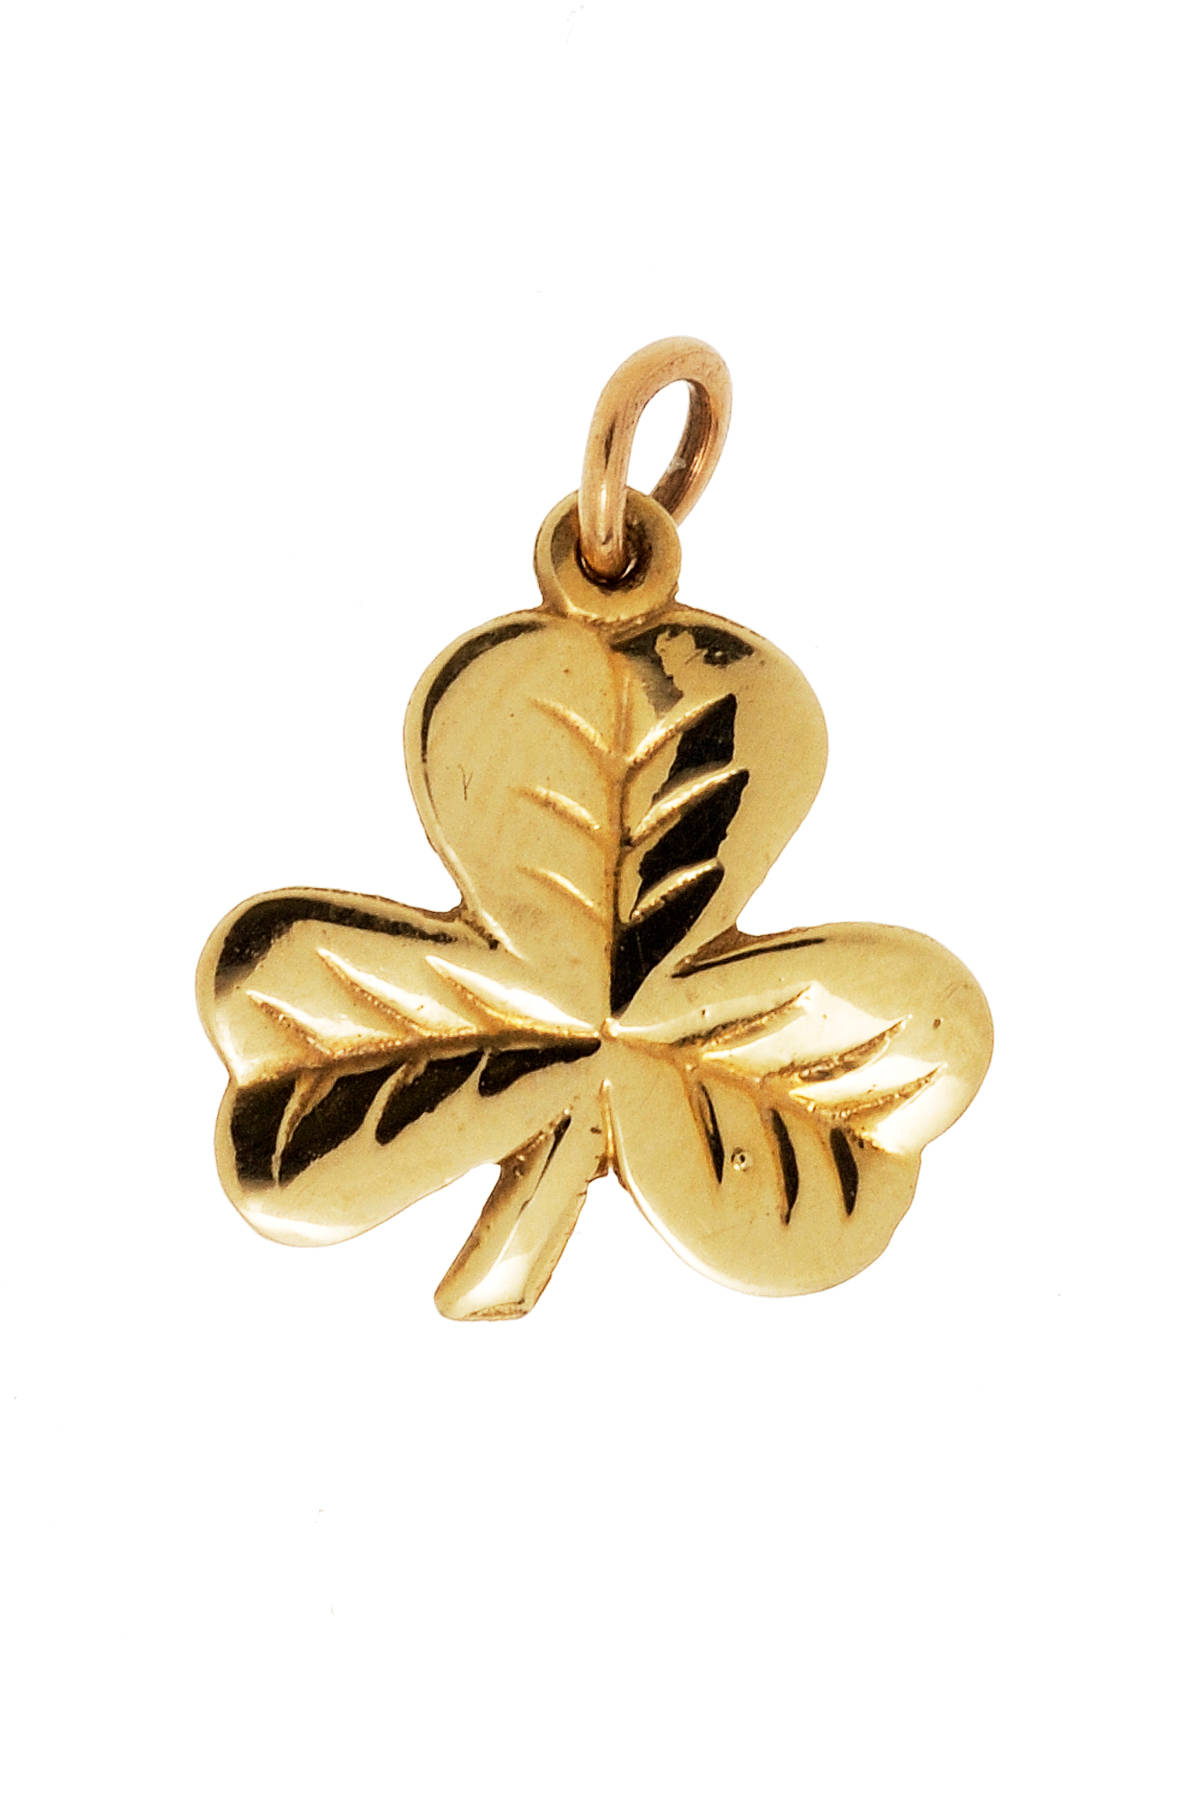 10 carat yellow gold shamrock charm